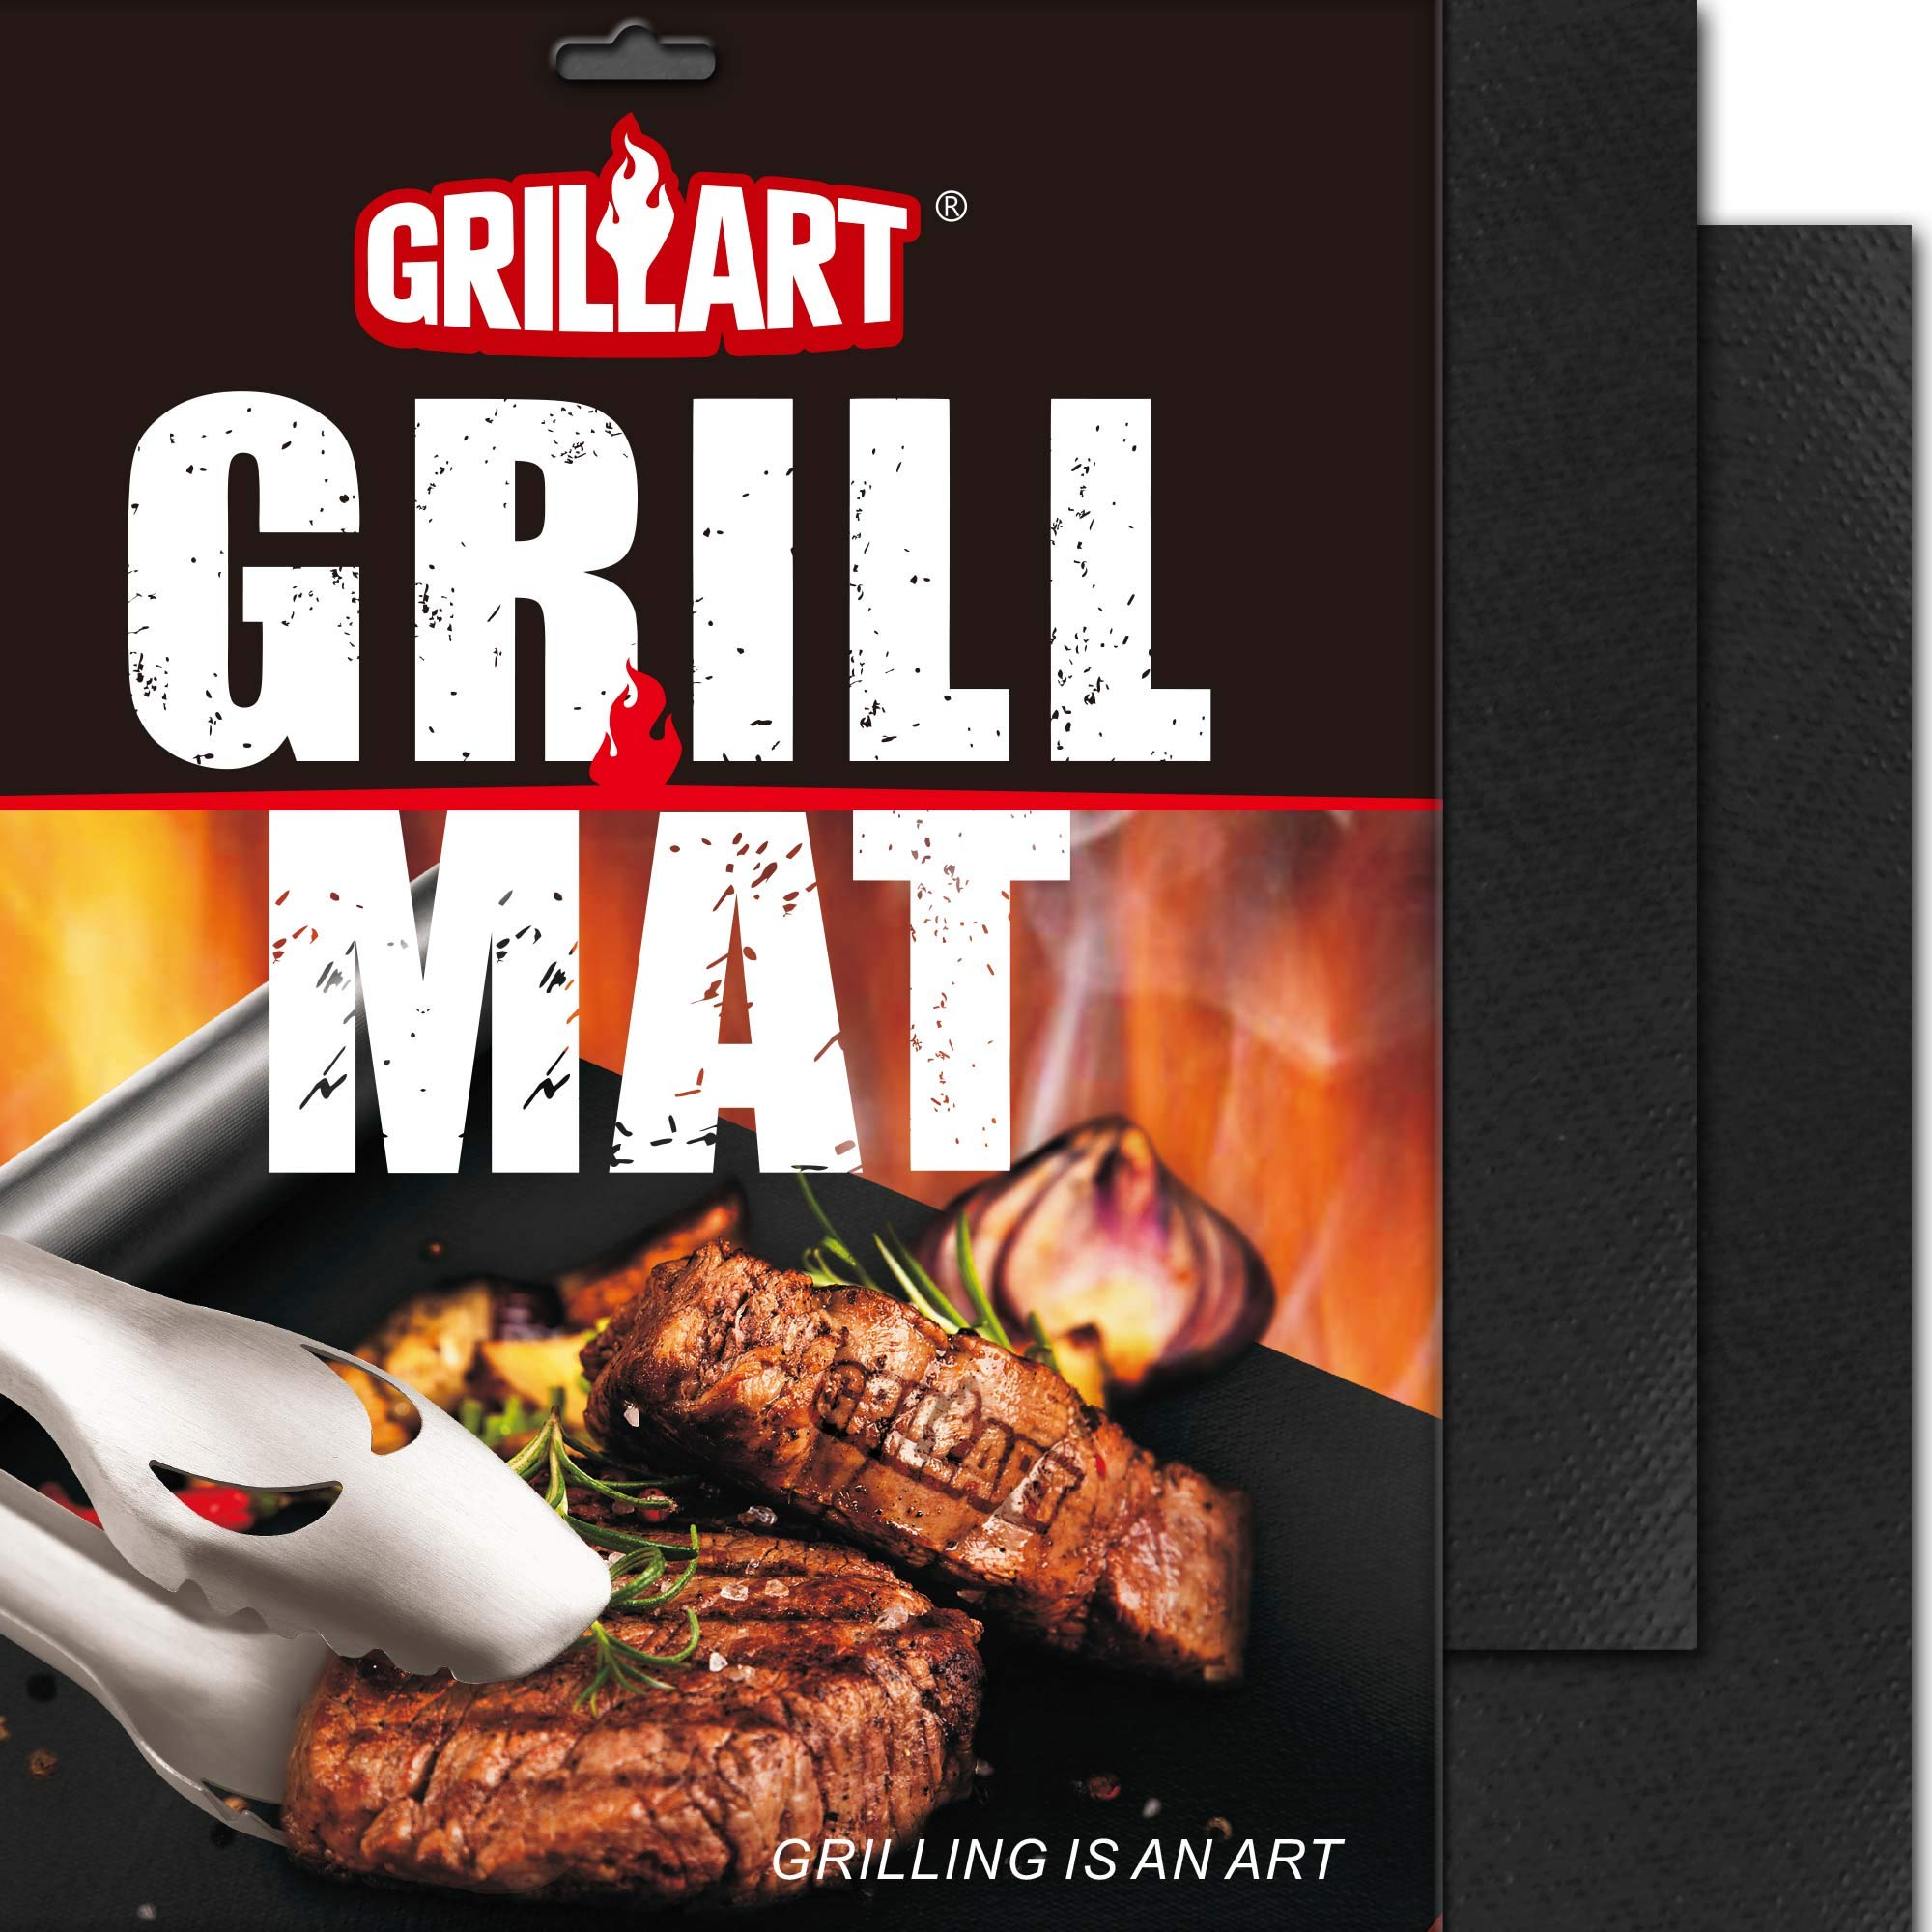 GRILLART BBQ Grill Mats - 100% Non-Stick 600 Degree Heavy Duty Mats (Set of 2) - Reusable, Easy to Clean Barbecue Grilling Accessories - Works on Electric Grill Gas Charcoal BBQ